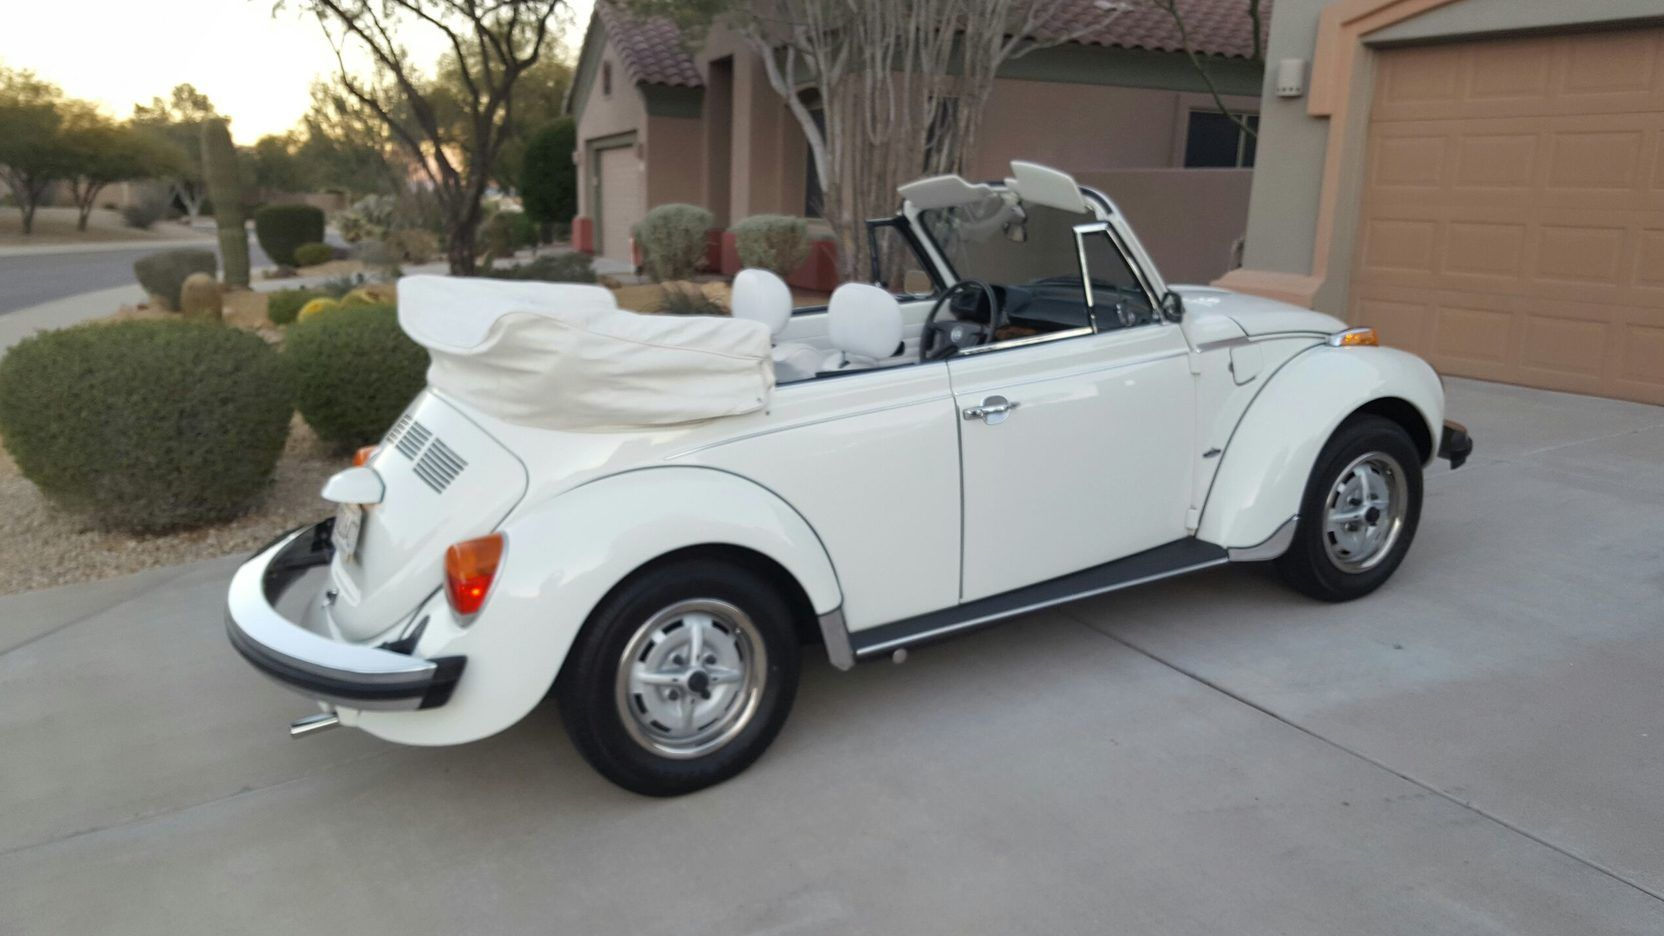 1979 Volkswagen Beetle Convertible presented as Lot S44.1 at ...